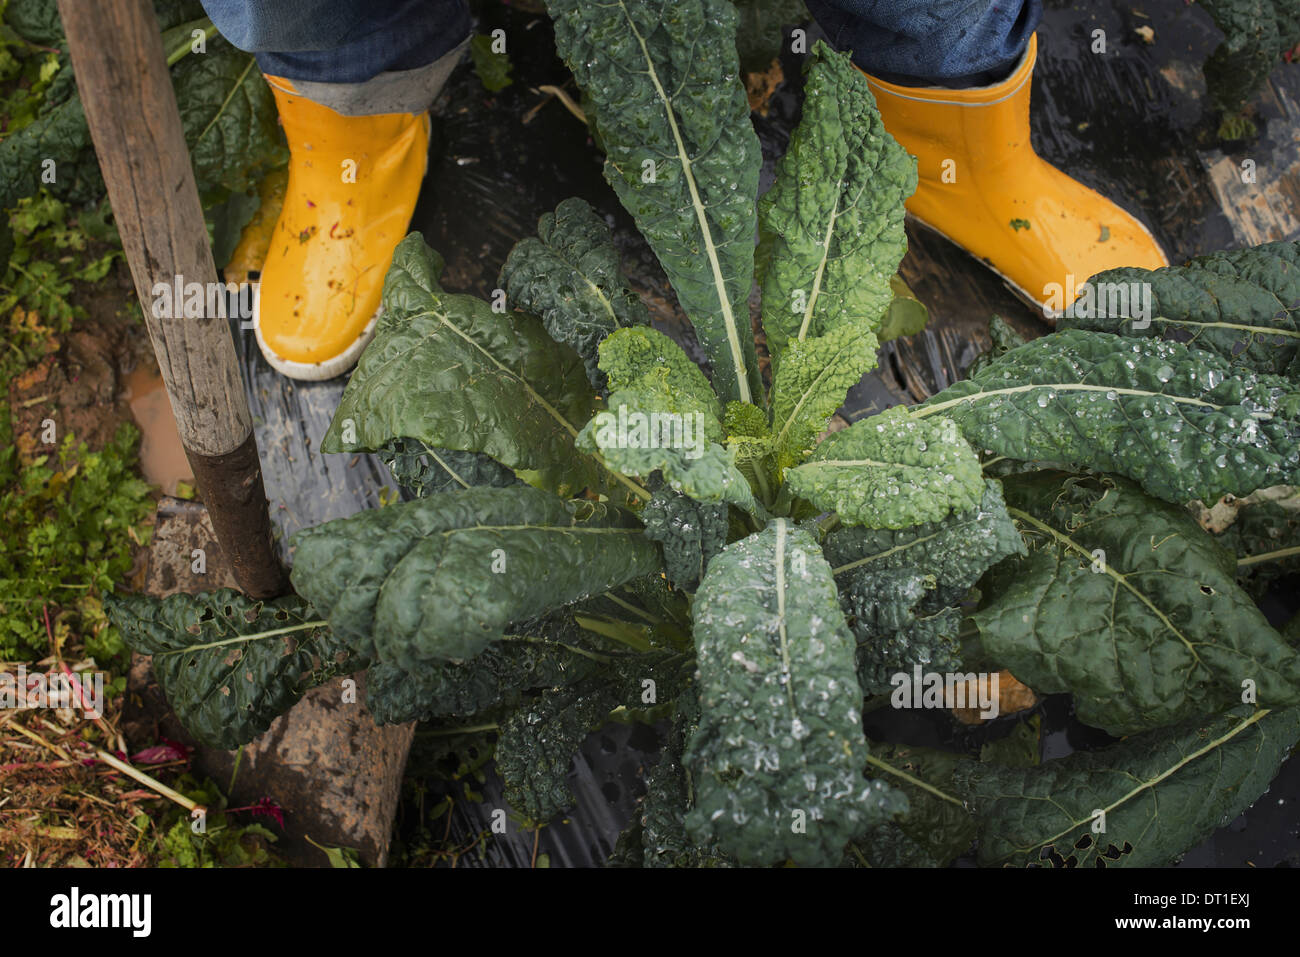 Organic Farmer at Work A person's feet in yellow work boots - Stock Image